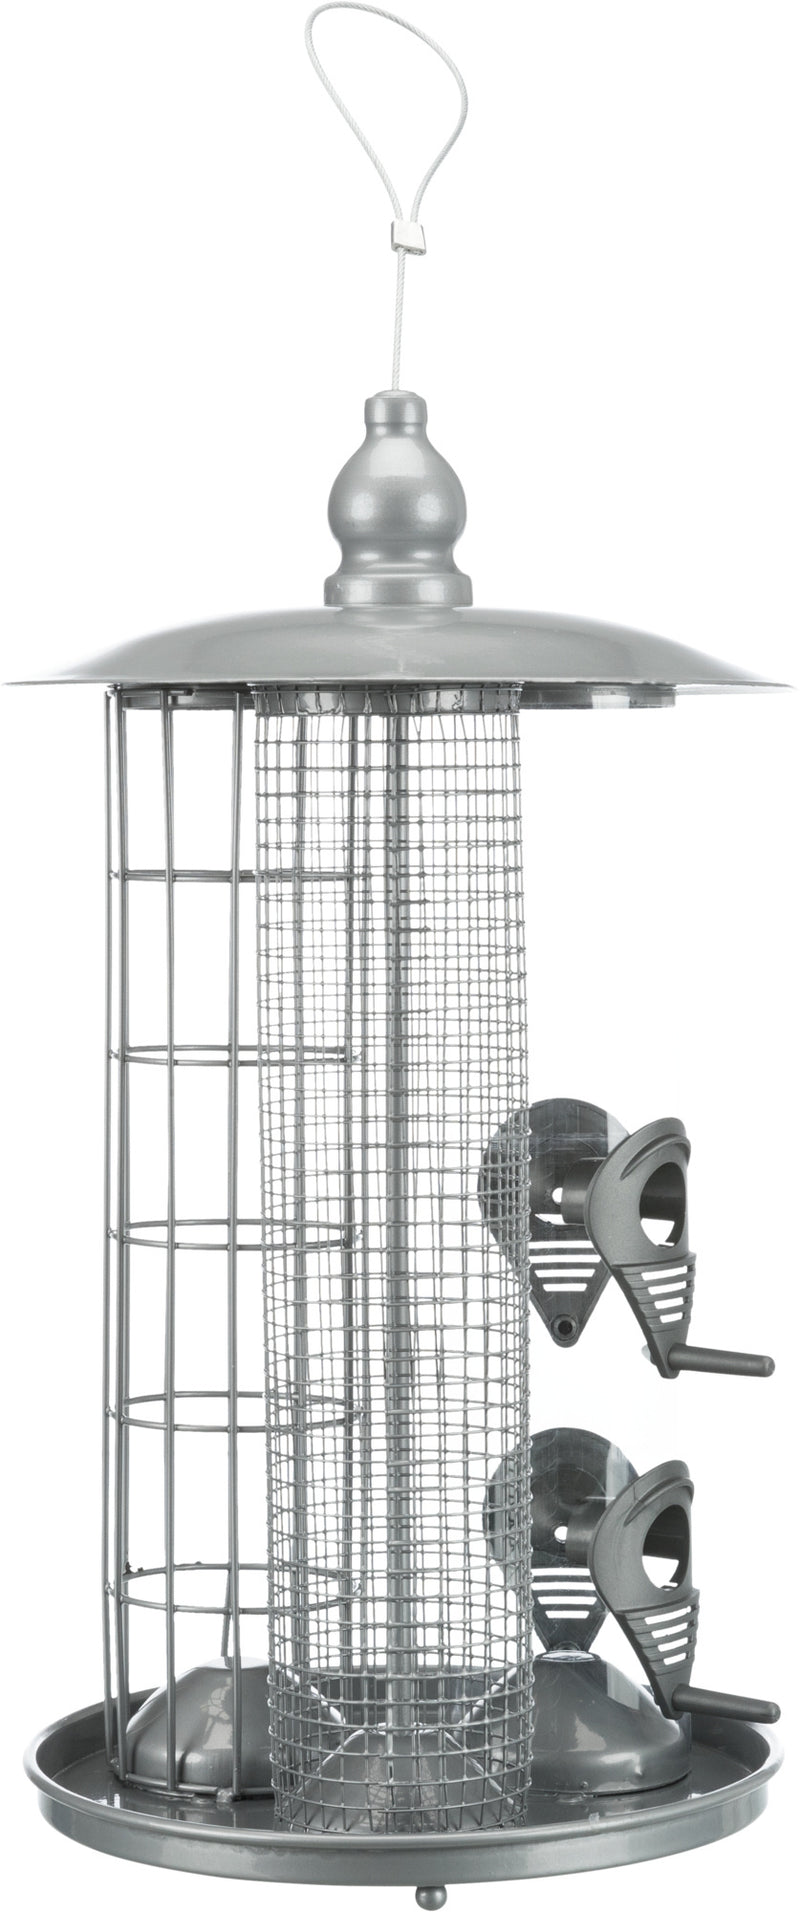 55421 Bird feeding station 3 in 1, ø 20 × 36.5 cm, SIL